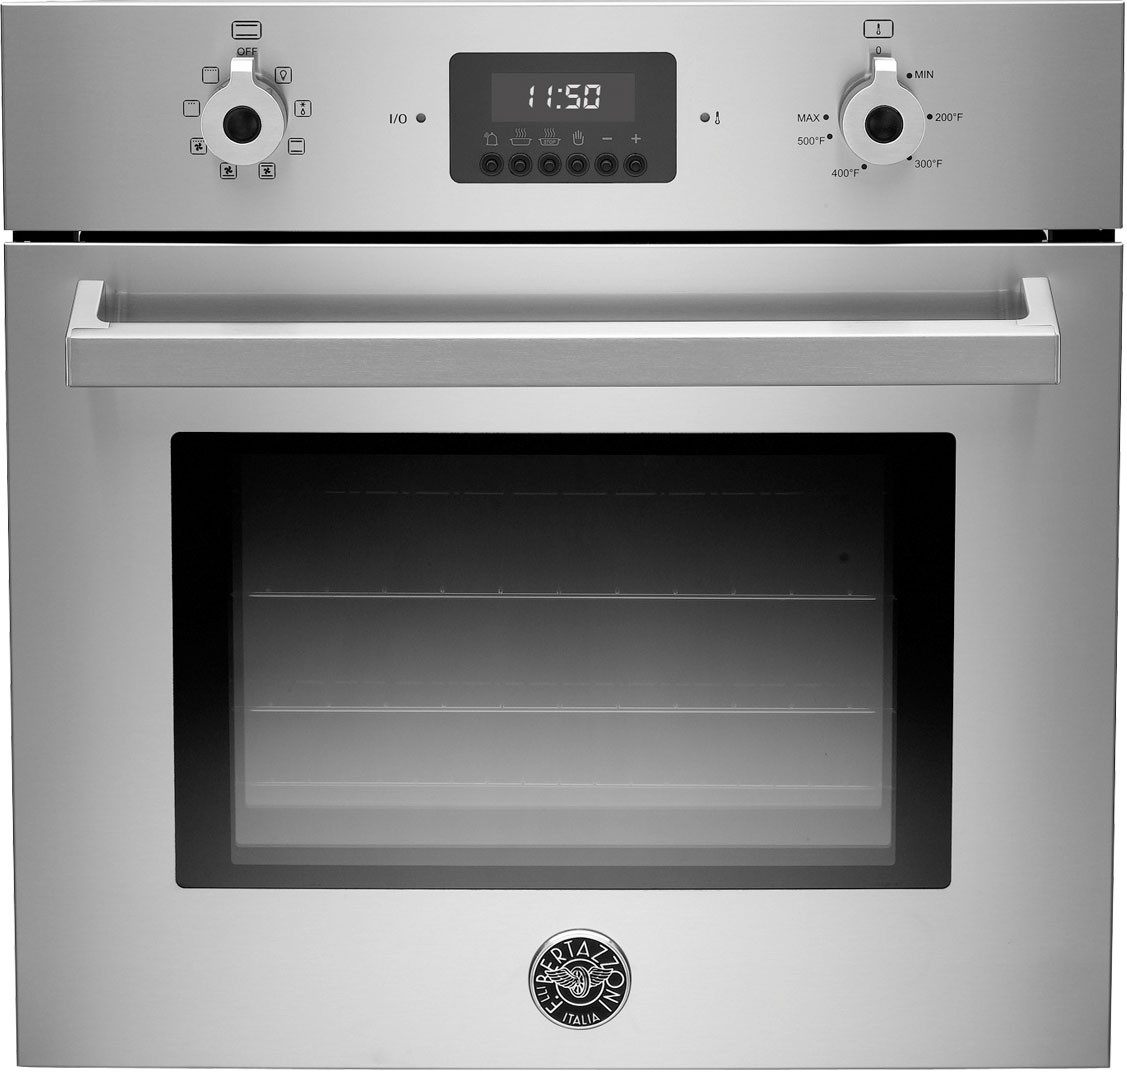 Whirlpool white ice single wall oven - Whirlpool White Ice Single Wall Oven 42